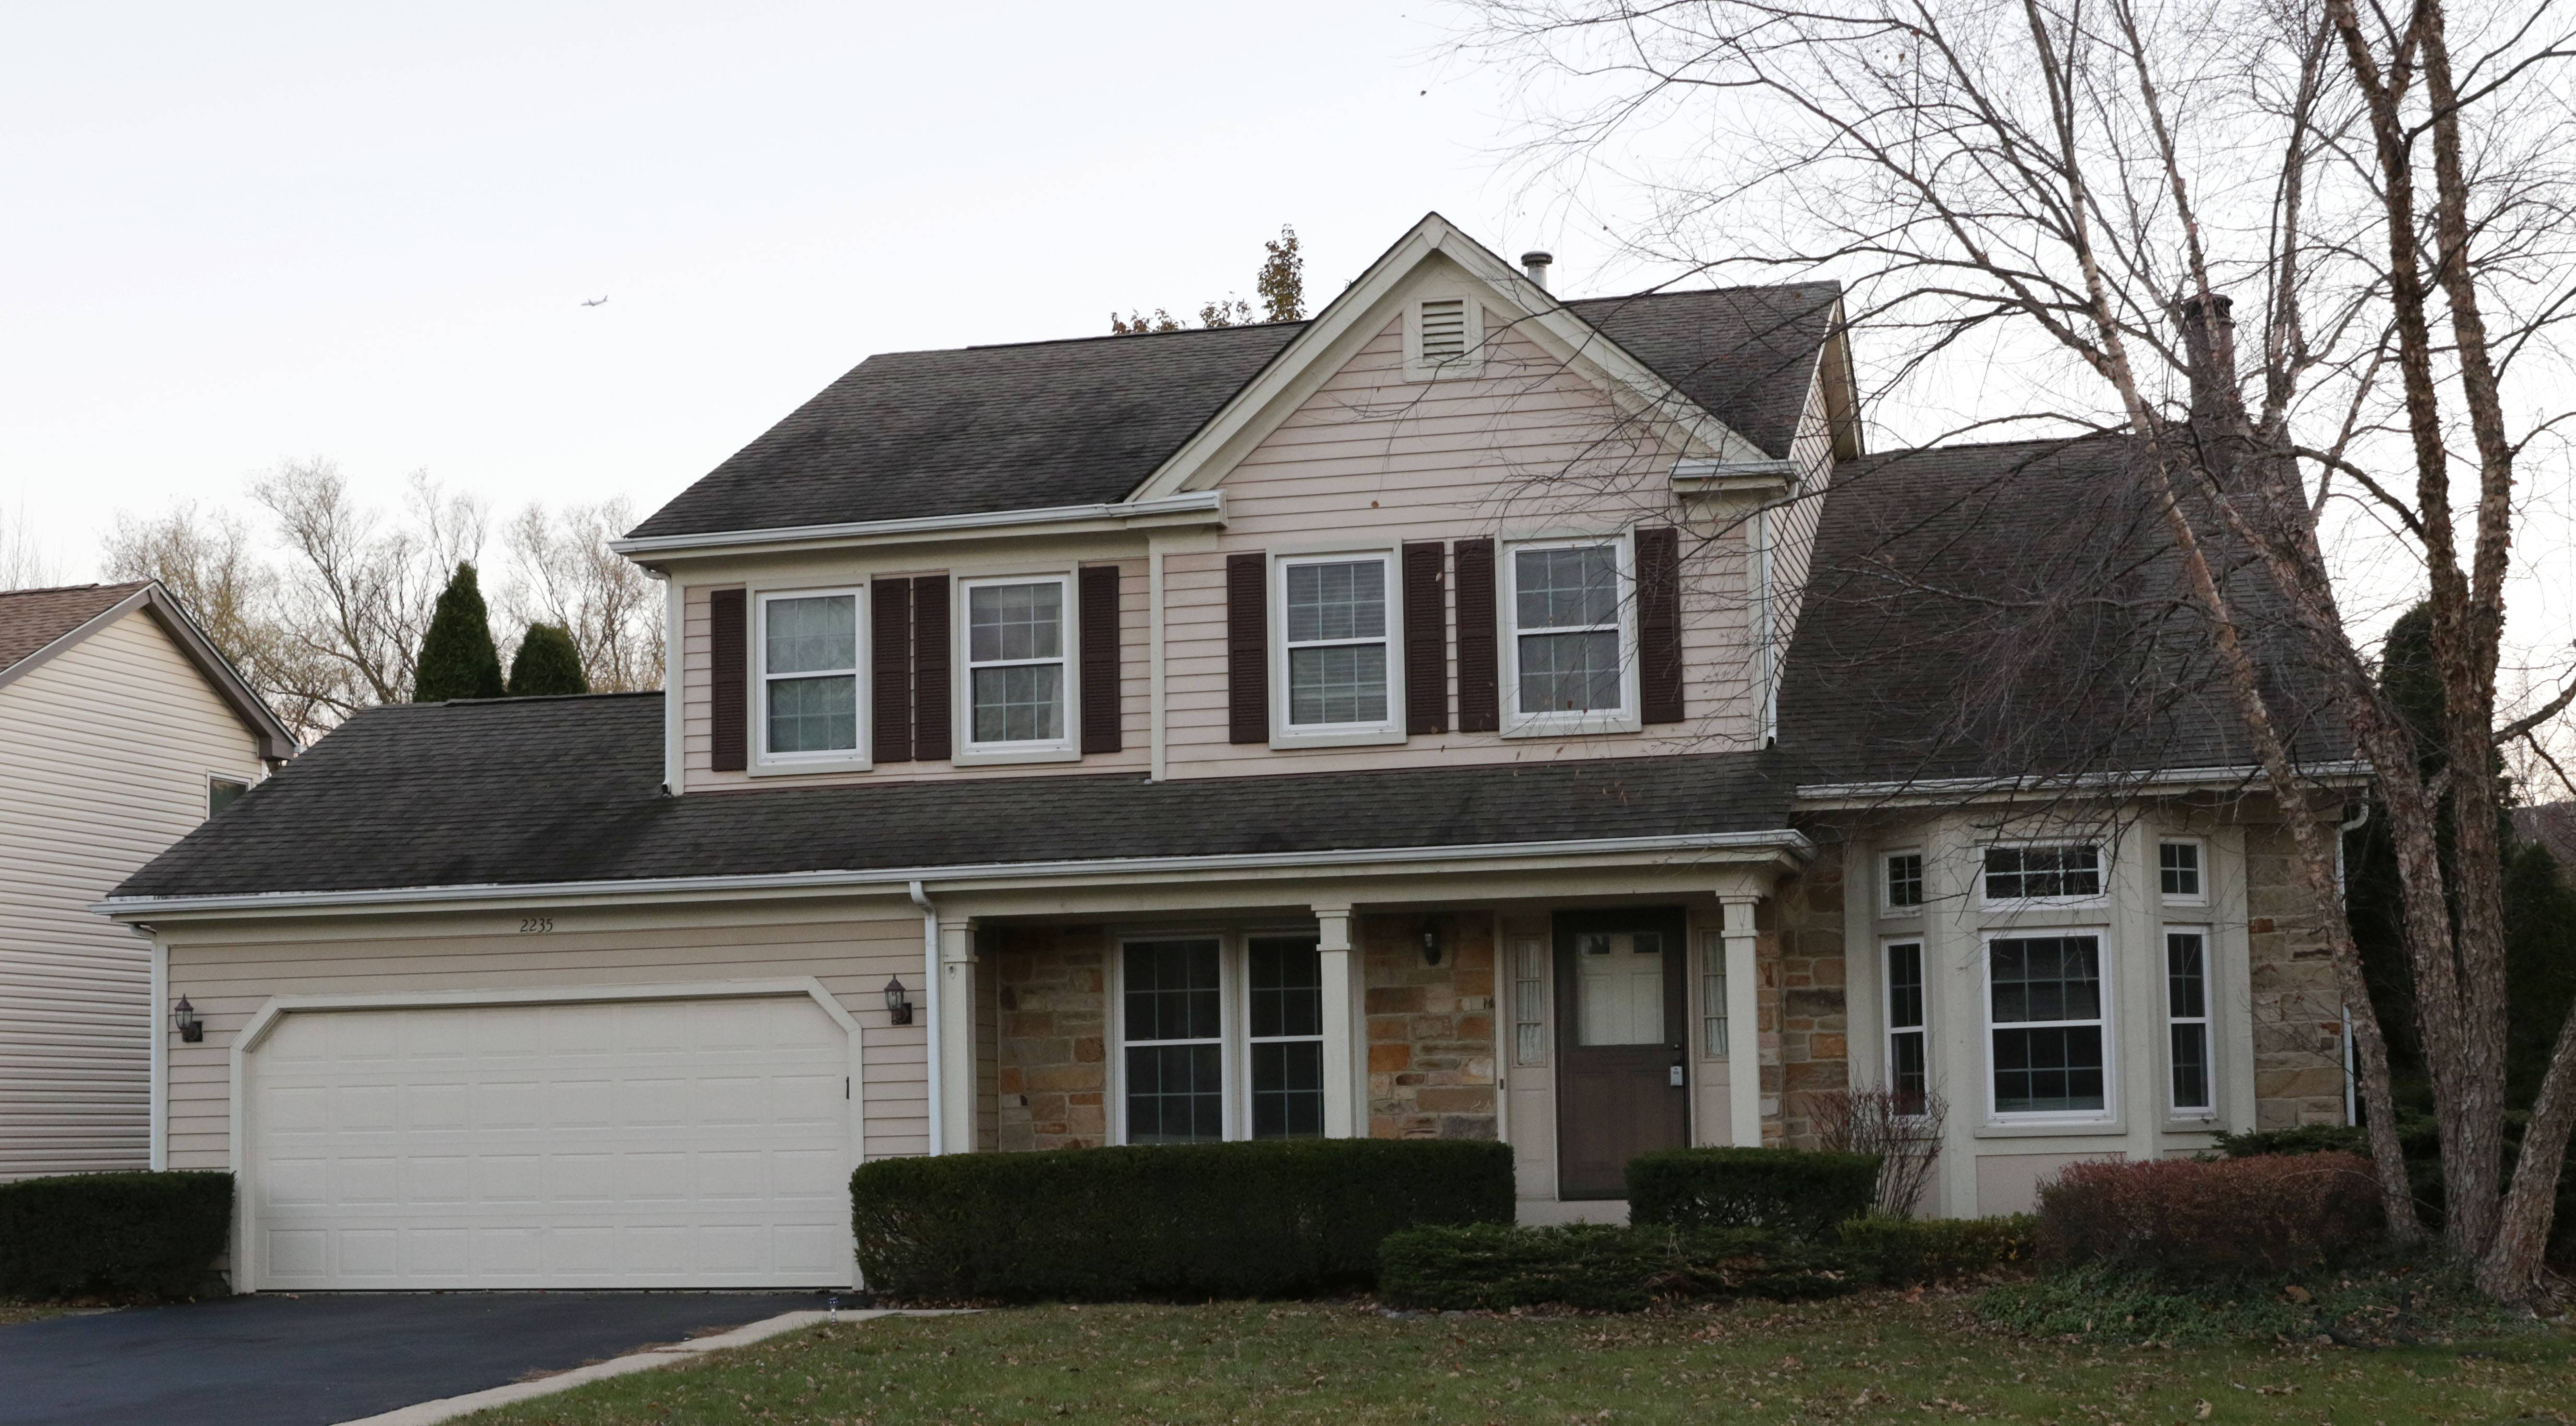 Des Plaines Elementary District 62 board member Sharon Lynch, a local Realtor, helped embattled Superintendent Floyd Williams Jr. find this house in Schaumburg, just months after she voted to hire him in 2016.